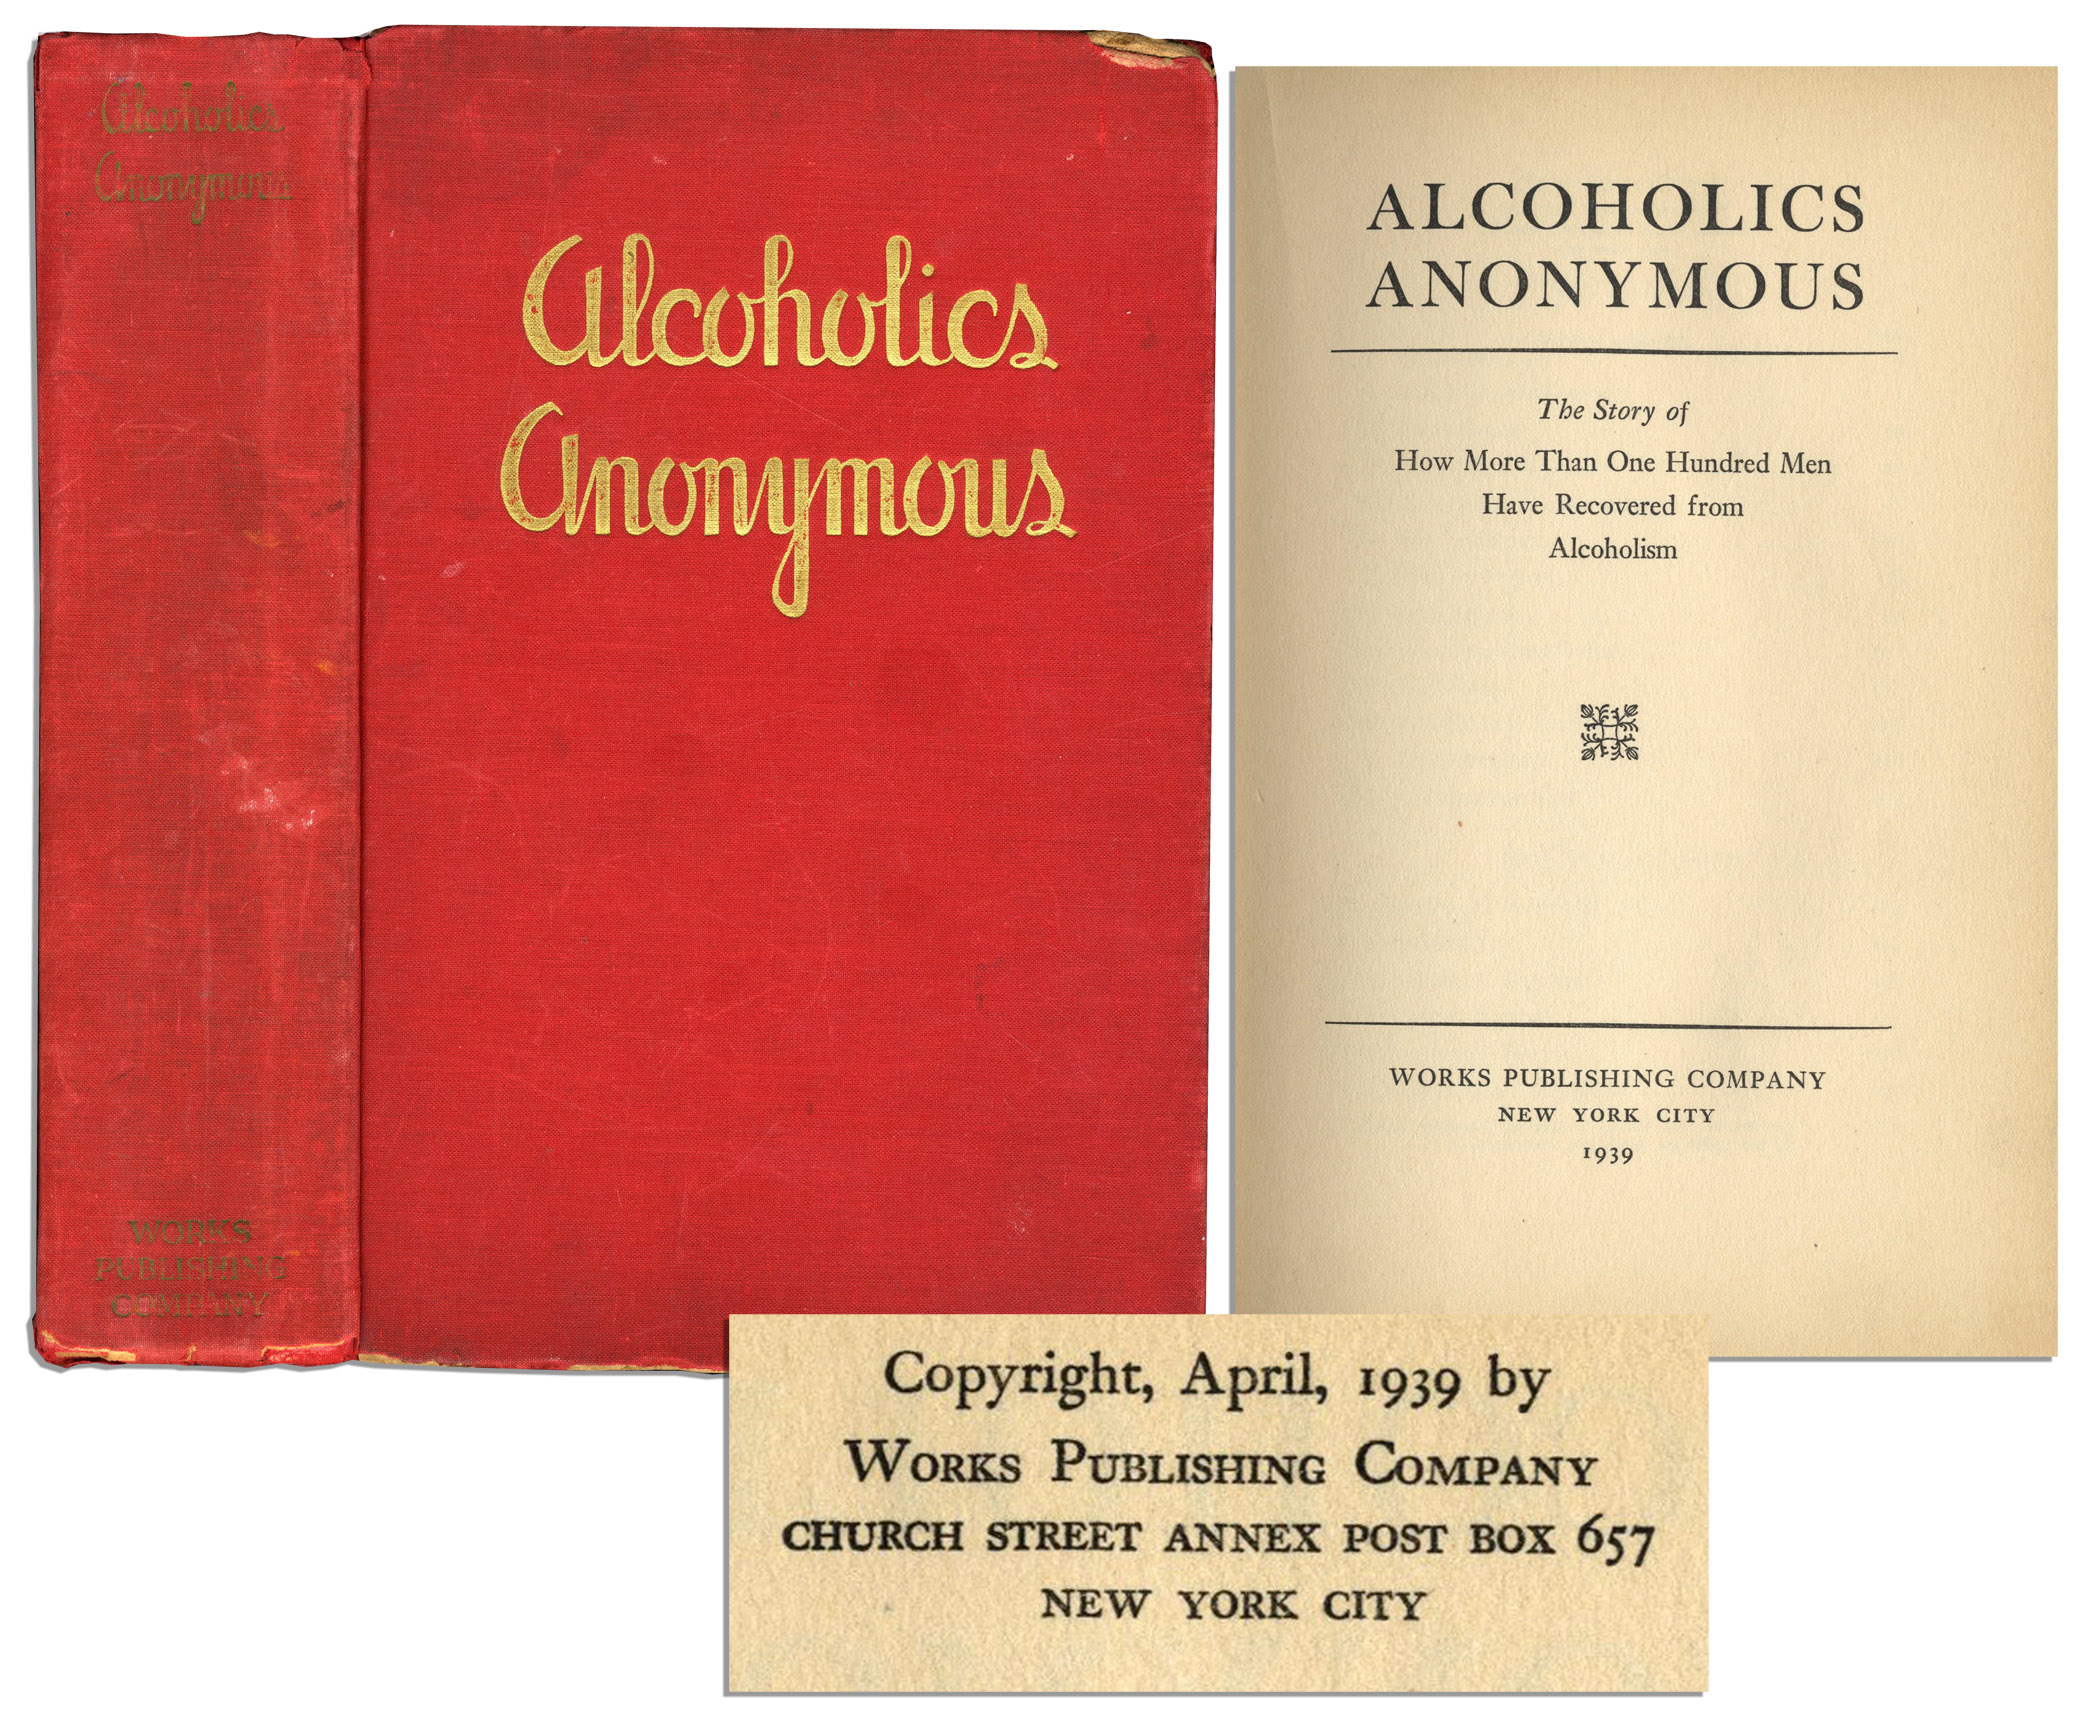 Alcoholics Anonymous First Edition Printing Of Book